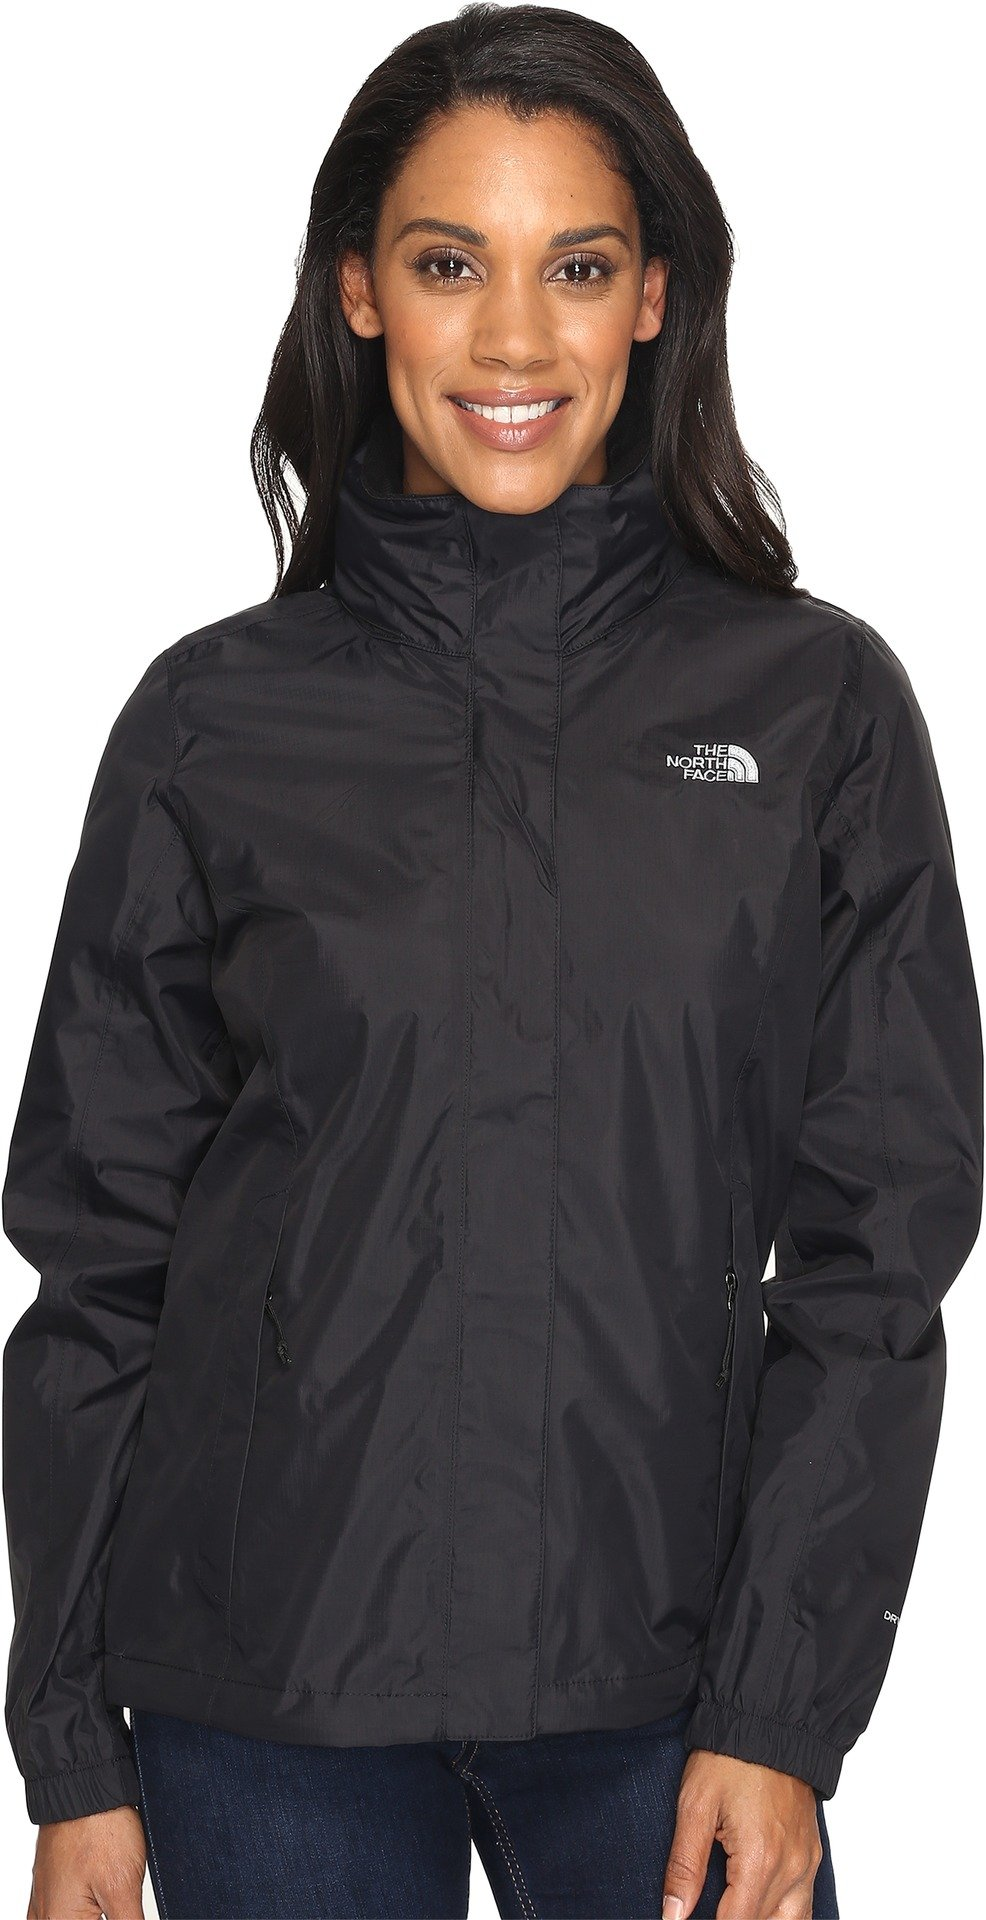 The North Face Womens Resolve 2 Jacket TNF Black - XL